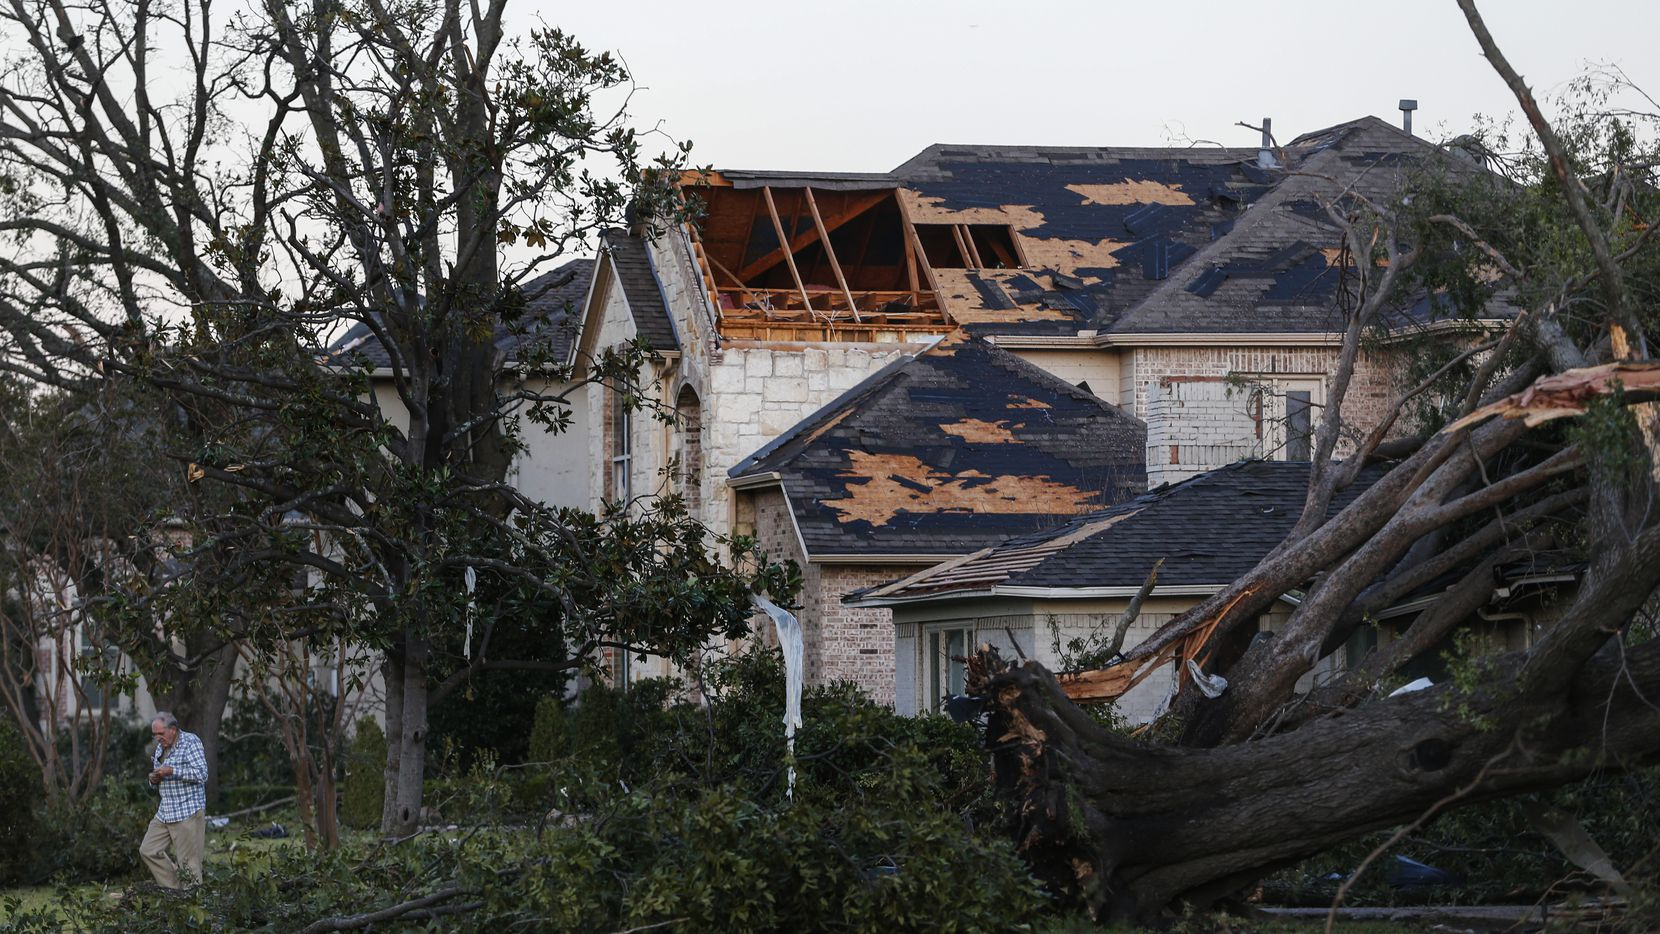 As the sunrises, homeowners emerge to survey damage from a tornado the night before near Northcrest Road and Crestline Avenue in Dallas on Sunday, Oct. 21, 2019.